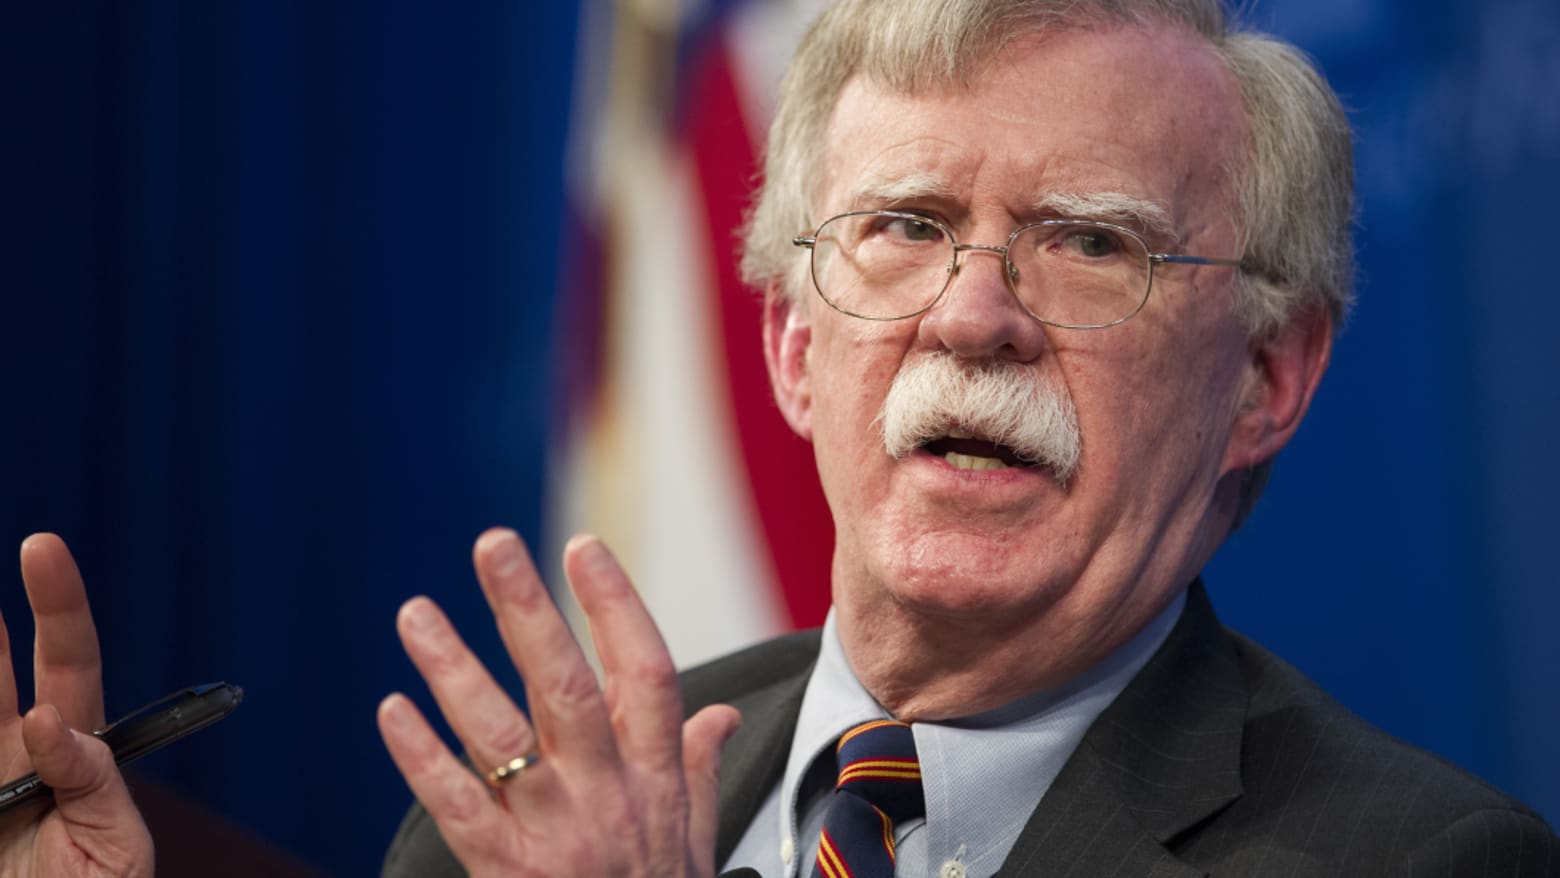 No timetable for Syria withdrawal: Bolton casts doubt on Trump's plans